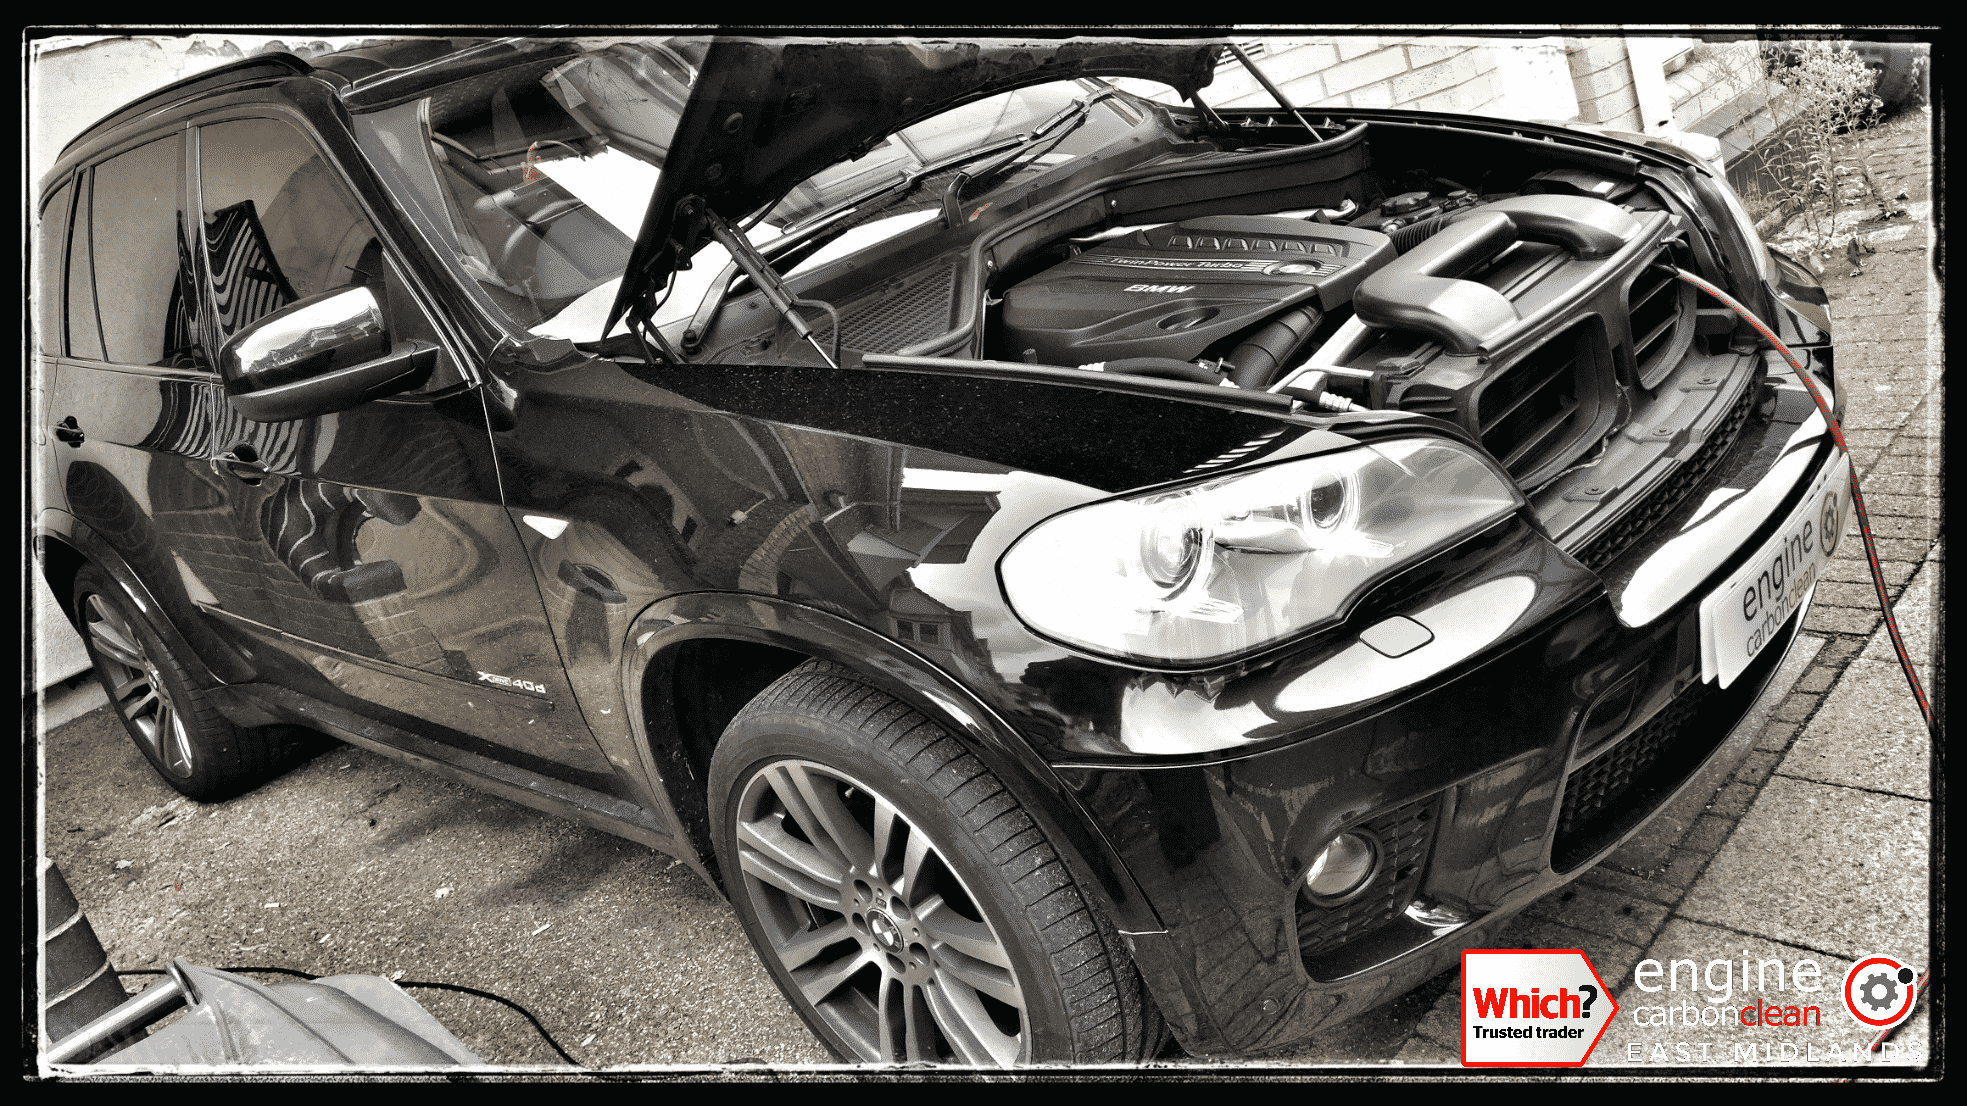 Engine Carbon Clean on a BMW X5 (2011 - 66,227 miles)